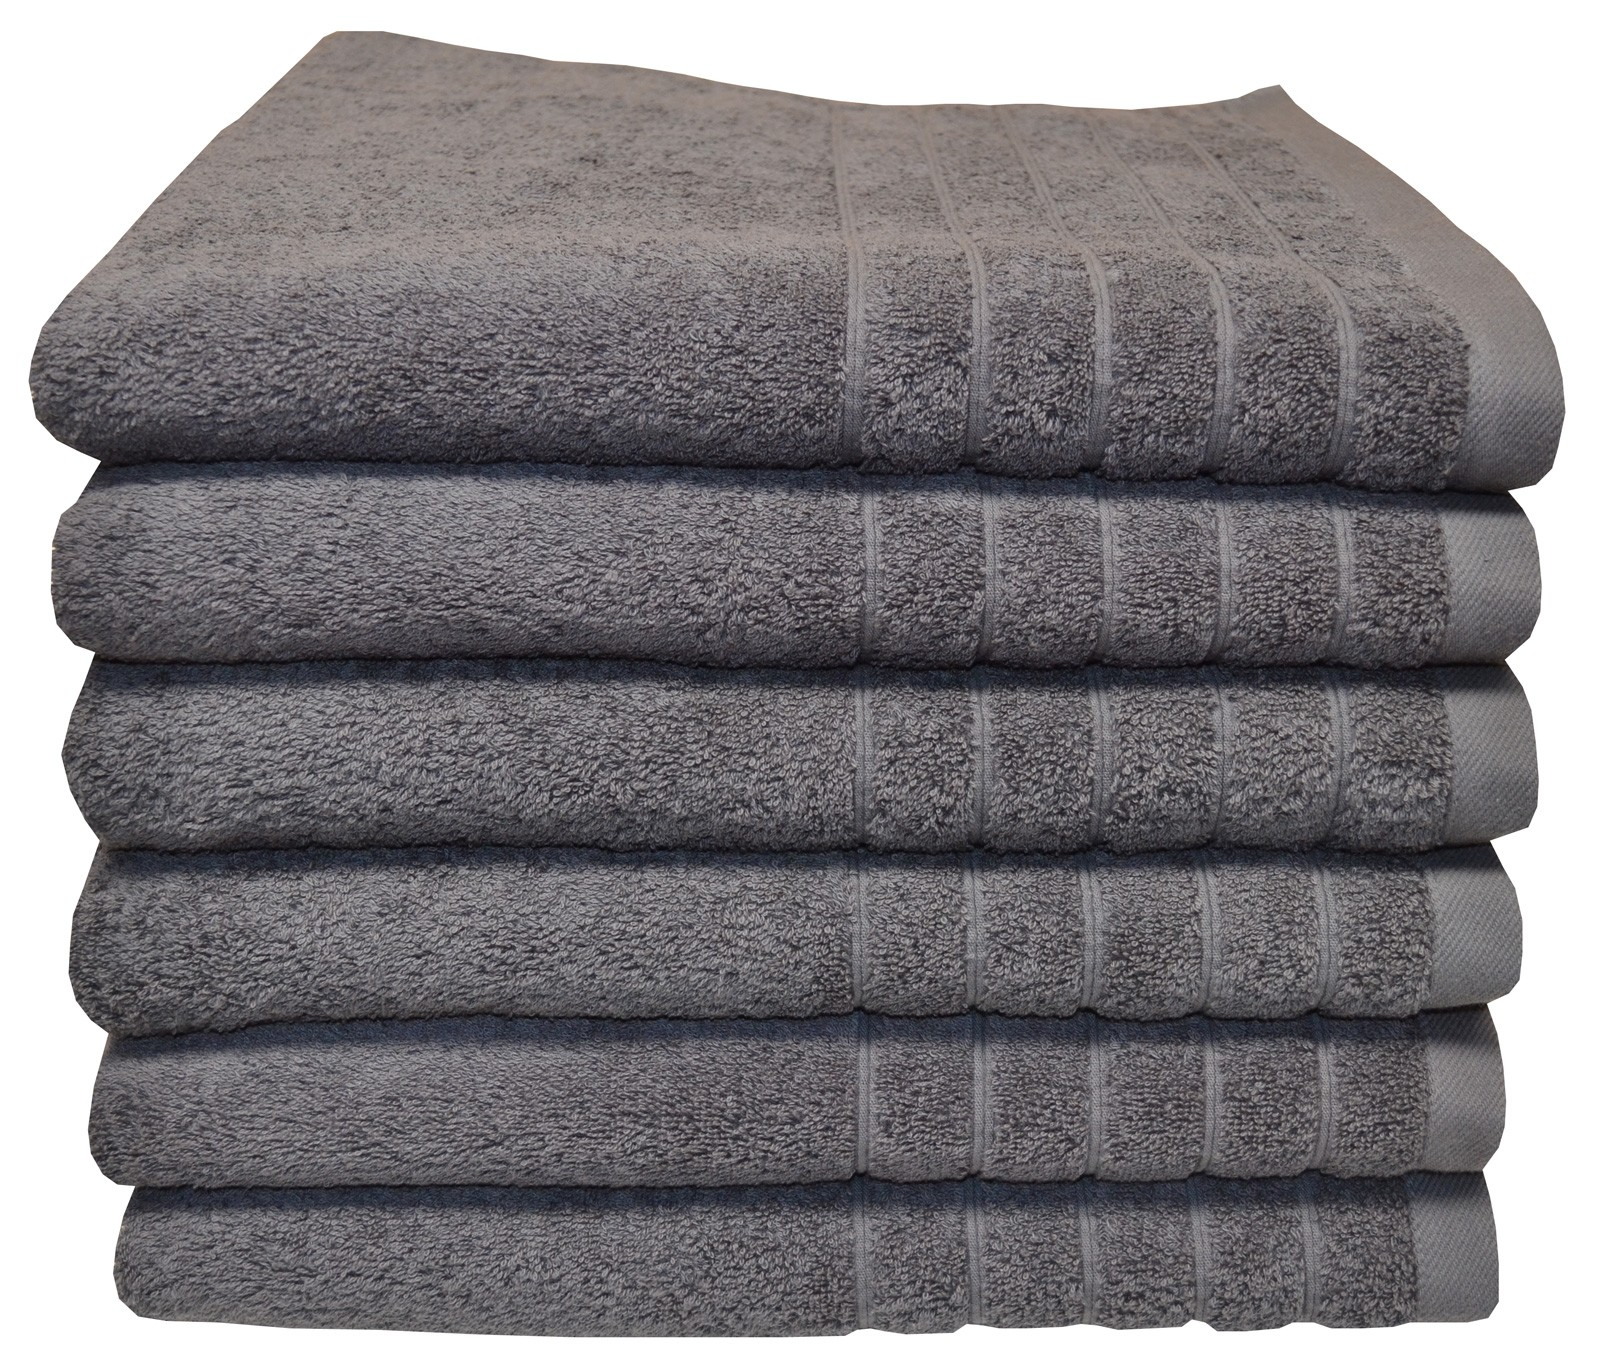 Egyptian cotton bath towel charcoal color